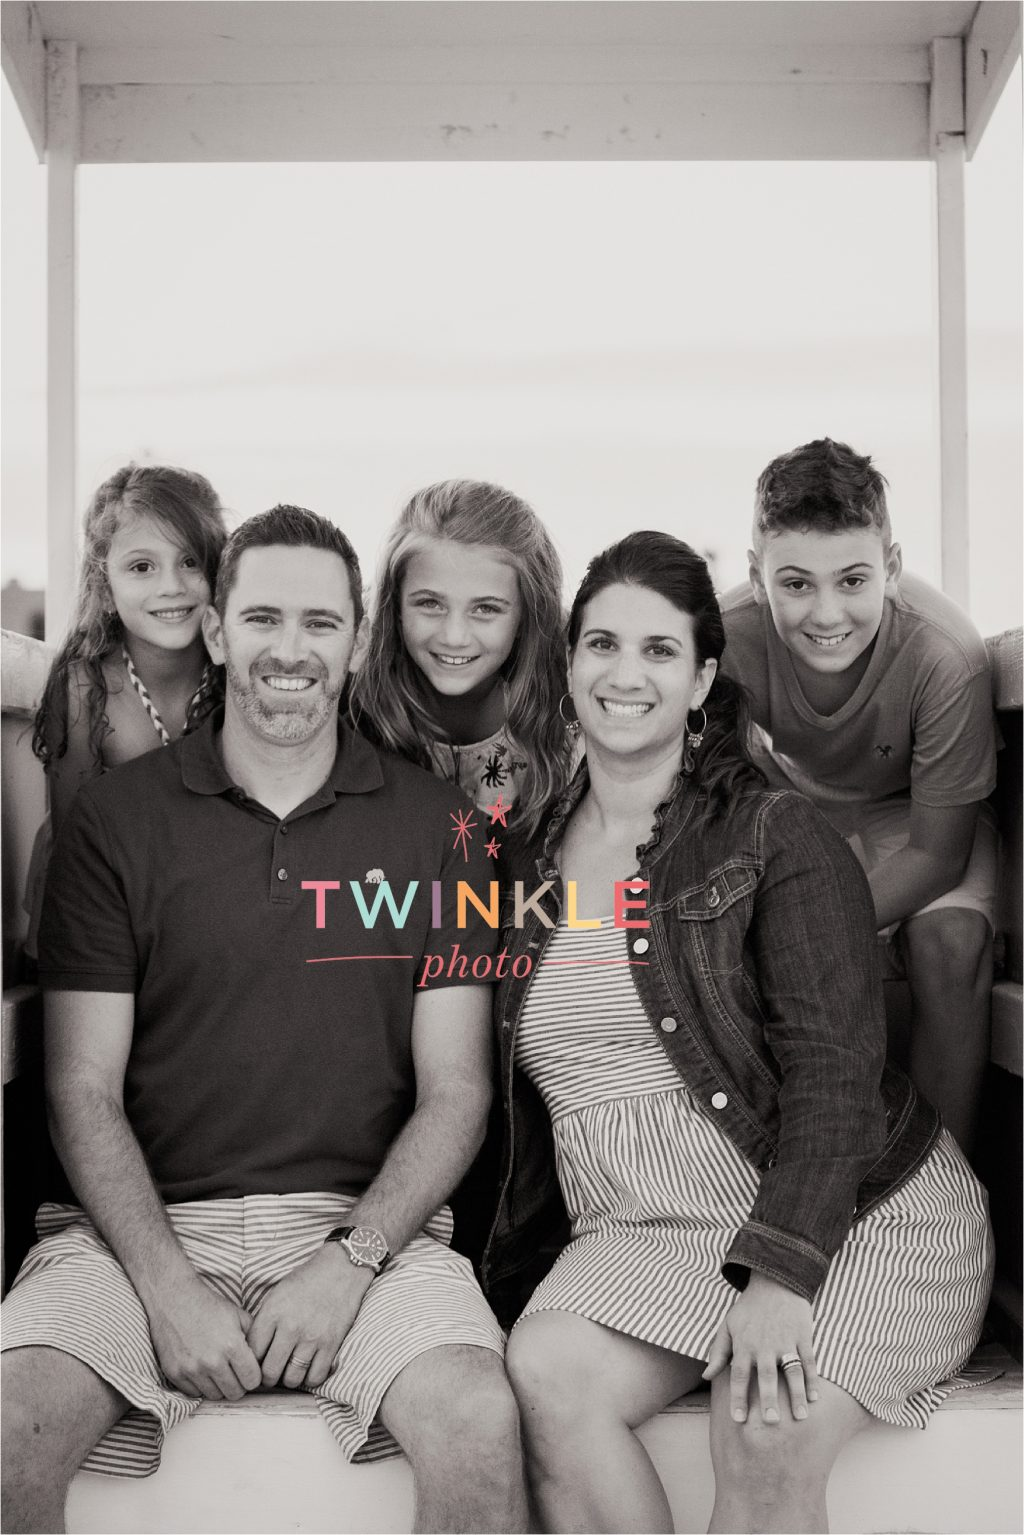 Avalon Stone Harbor Wildwood Ocean City NJ OCNJ New Jersey Beach Family Portrait Photographer Photography Twinkle Photo-20